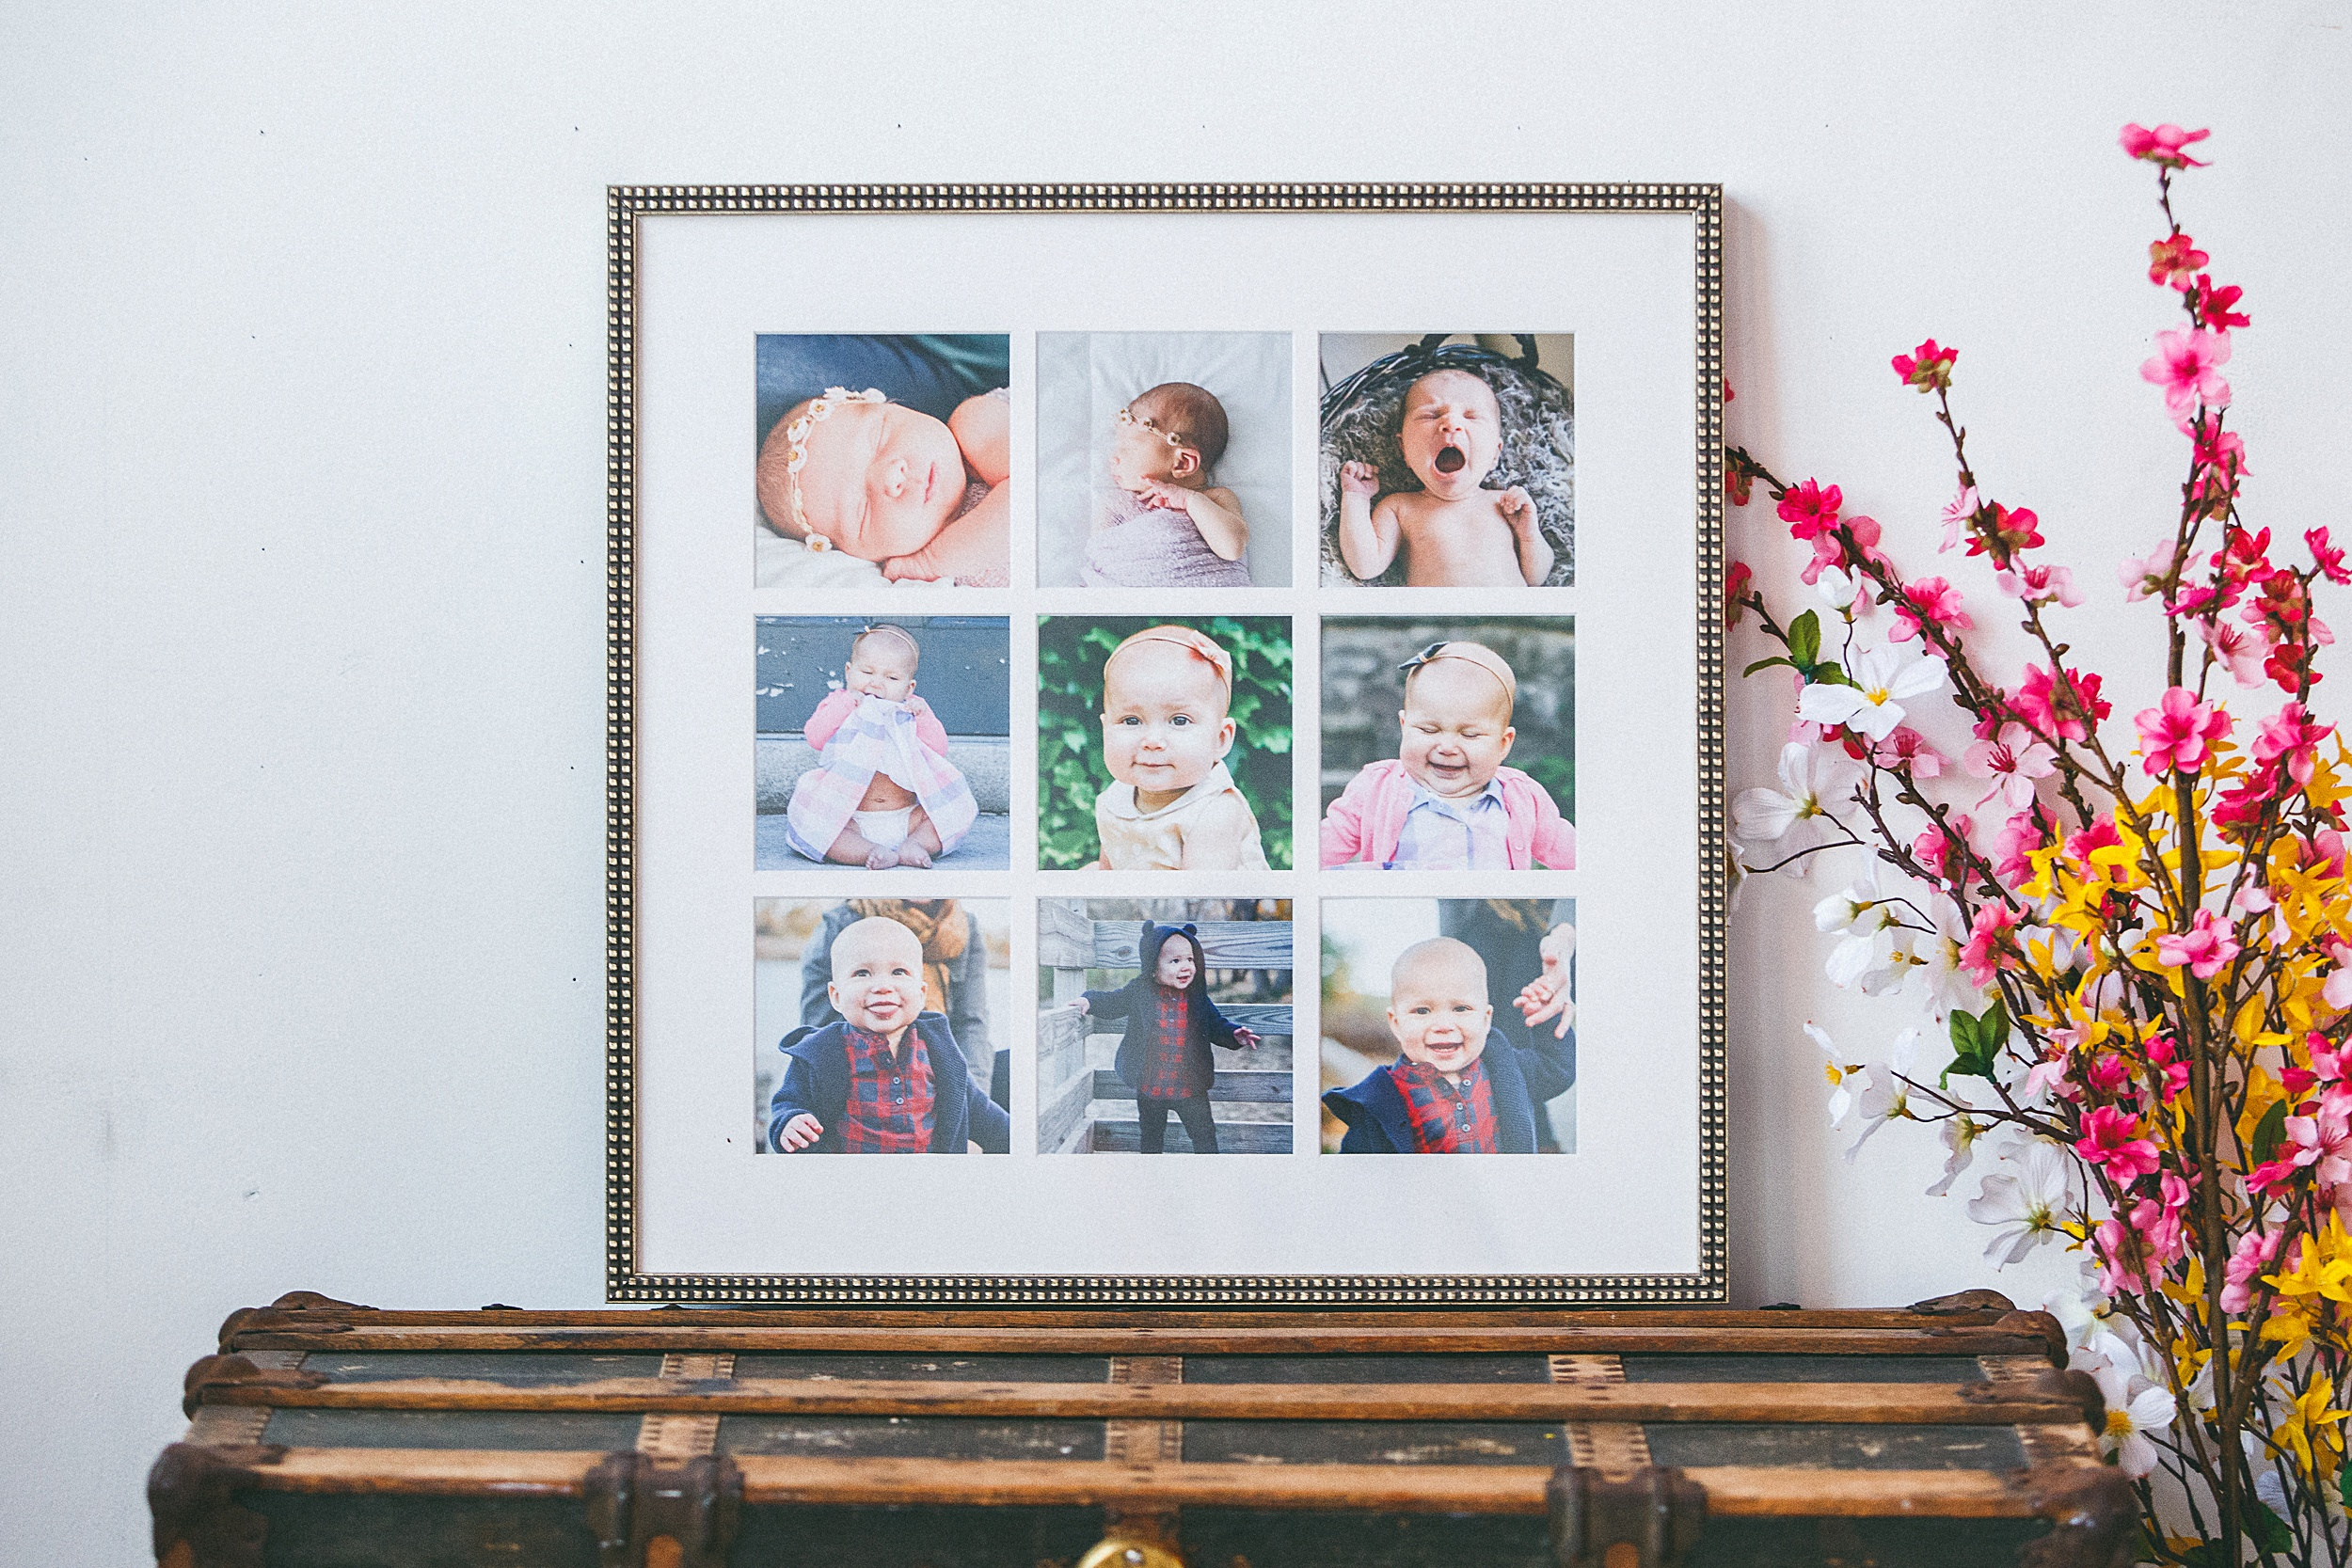 Kelly_Kester_Photography_Baby_Plan_Portrait_Frame_Collage.jpg